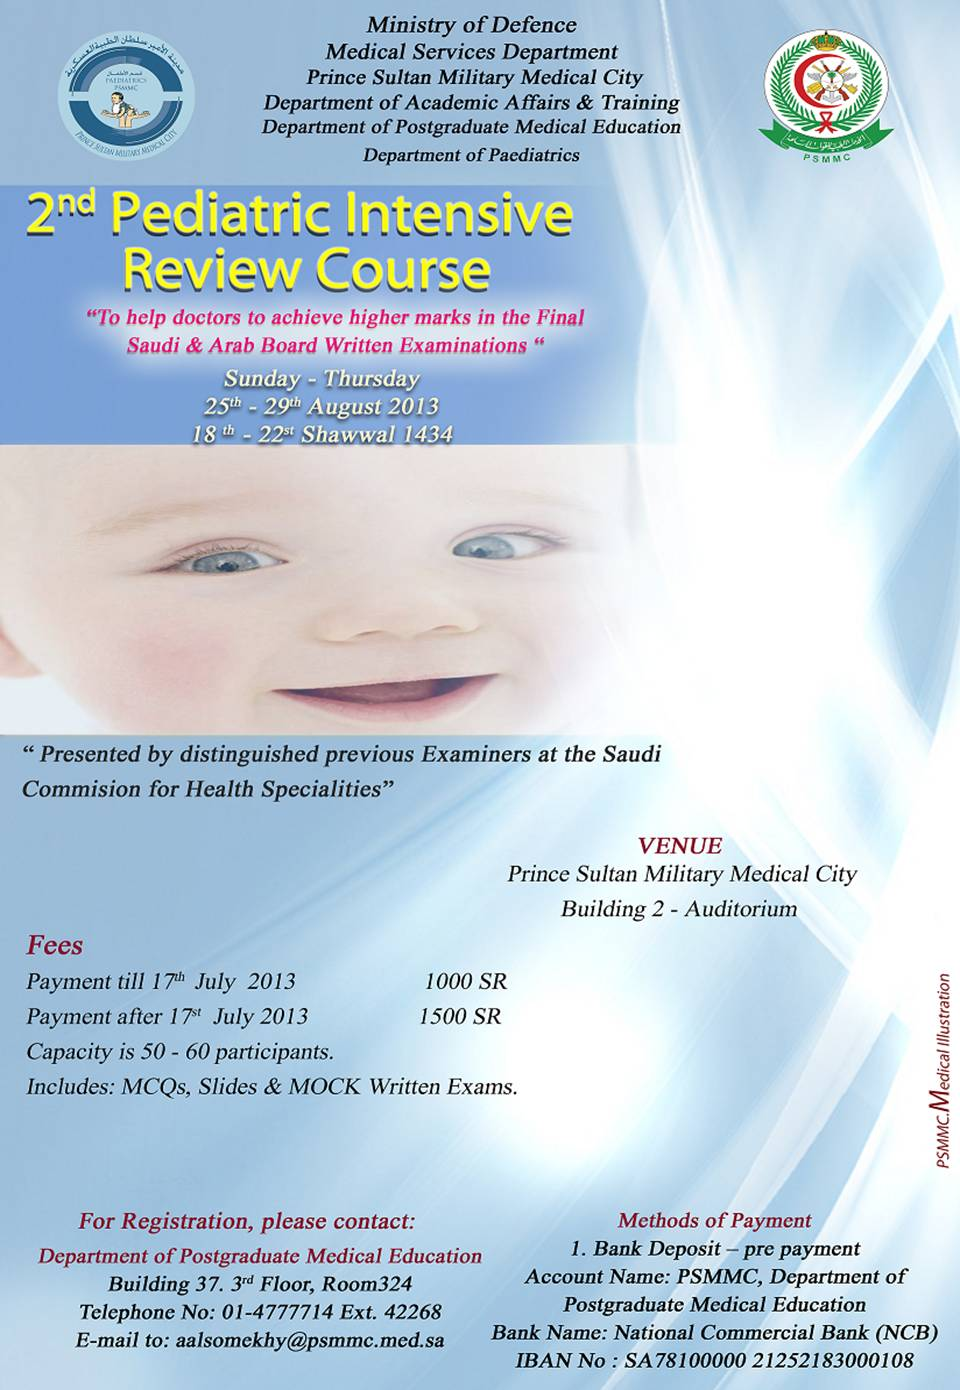 2nd Pediatric Intensive Review Course